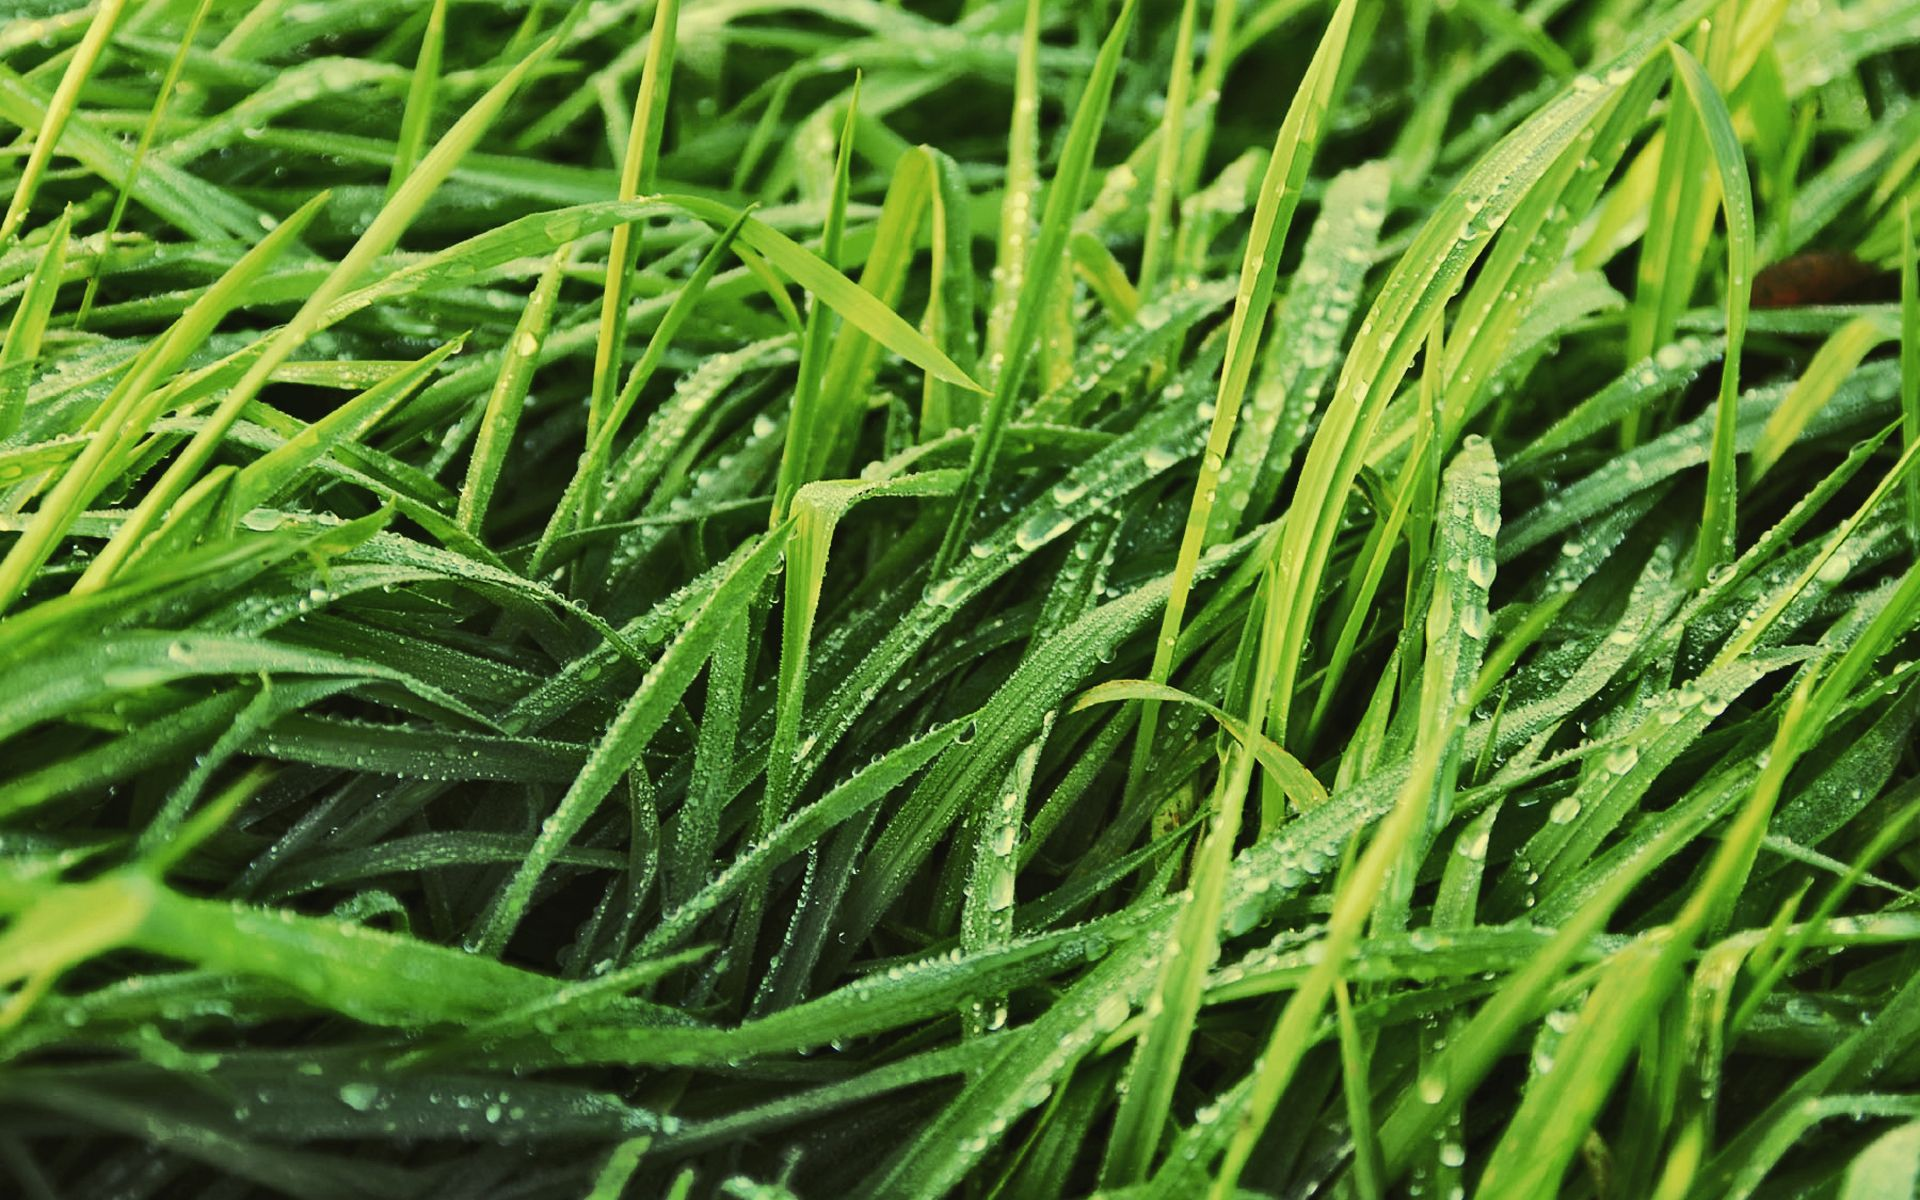 grass, greens, lawn, leaves, drops, dew, wallpapers , Pc backgrounds, free photos - HD wallpaper desktop backgrounds